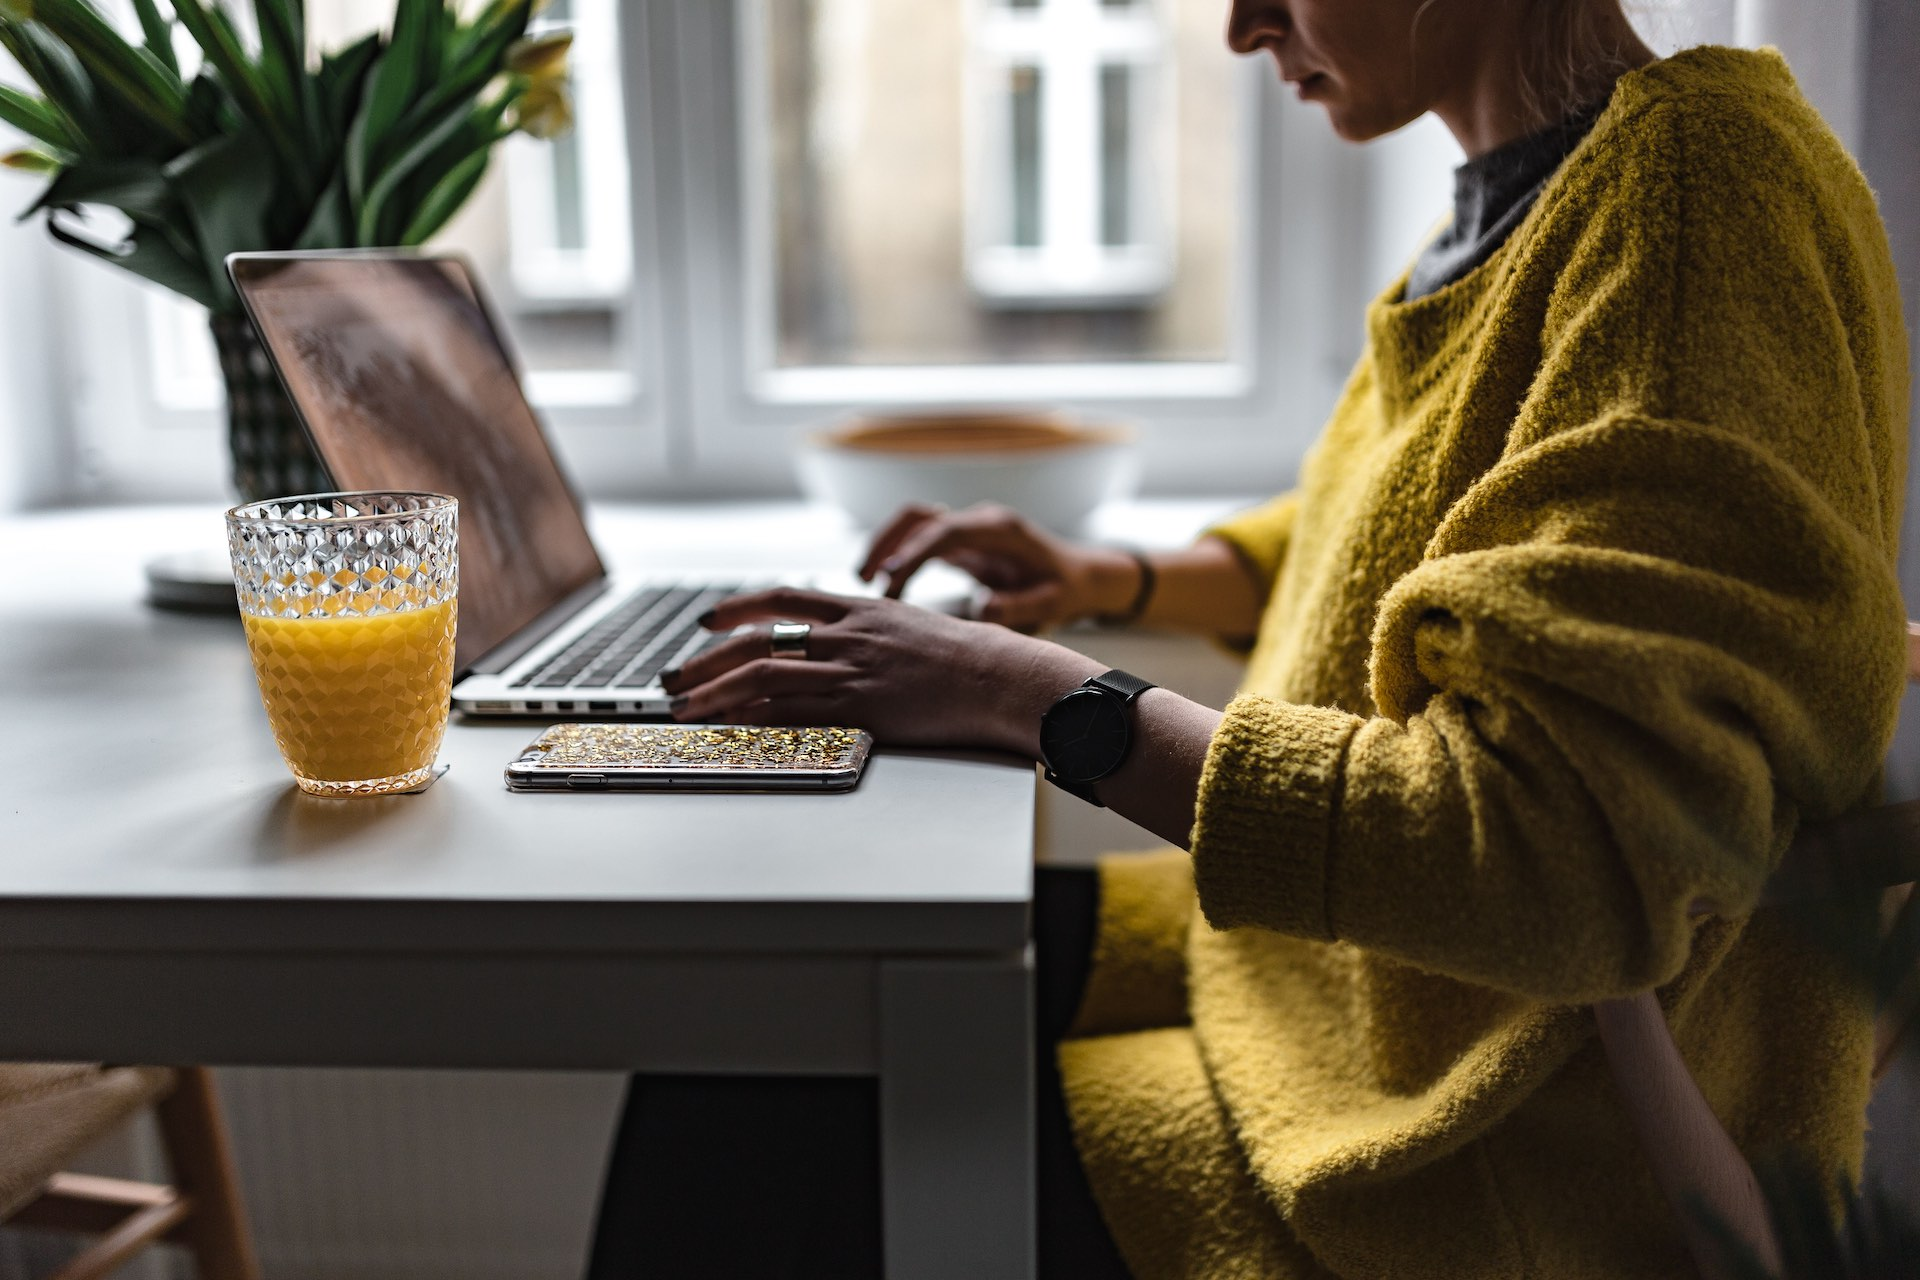 A woman working on her resume / CV in the morning while she eats breakfast and drinks orange juice at the same time. She's sitting at a modern table in front of a window with green plants.